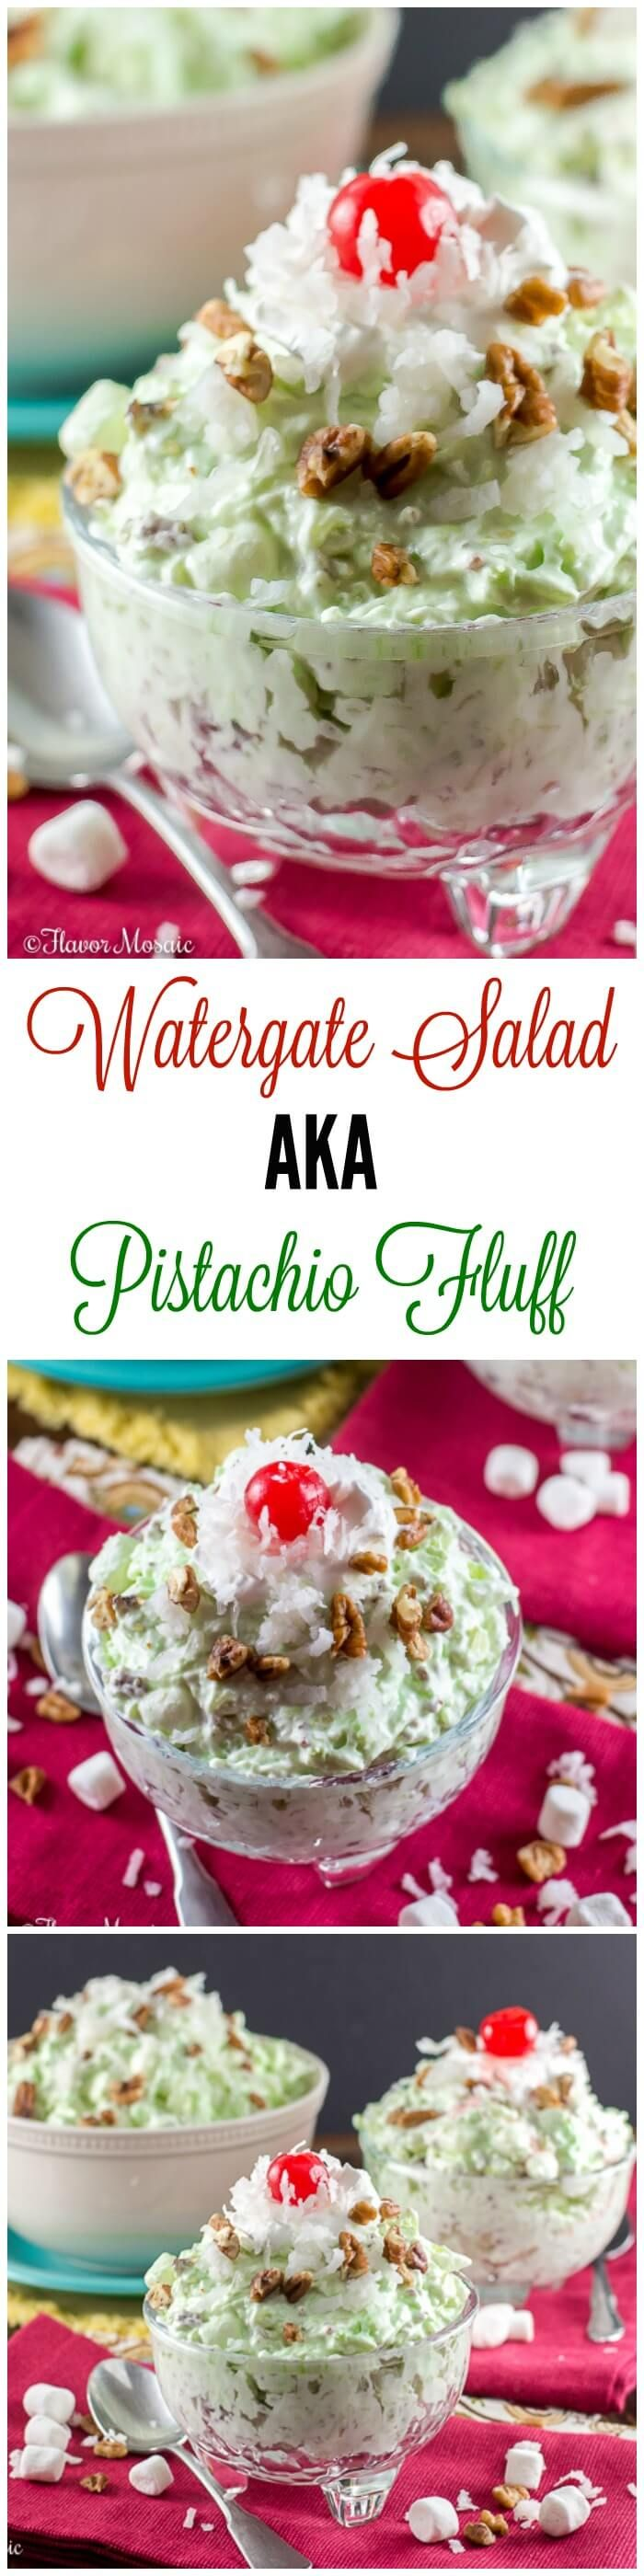 This Watergate Salad #SundaySupper, also known as Pistachio Salad, Pistachio Delight or Pistachio Fluff or Green Fluff, is a sweet, cool, crunchy dessert made with pistachio pudding, whipped topping, crushed pineapple, mini marshmallows, pecans and coconut. ~ https://FlavorMosaic.com